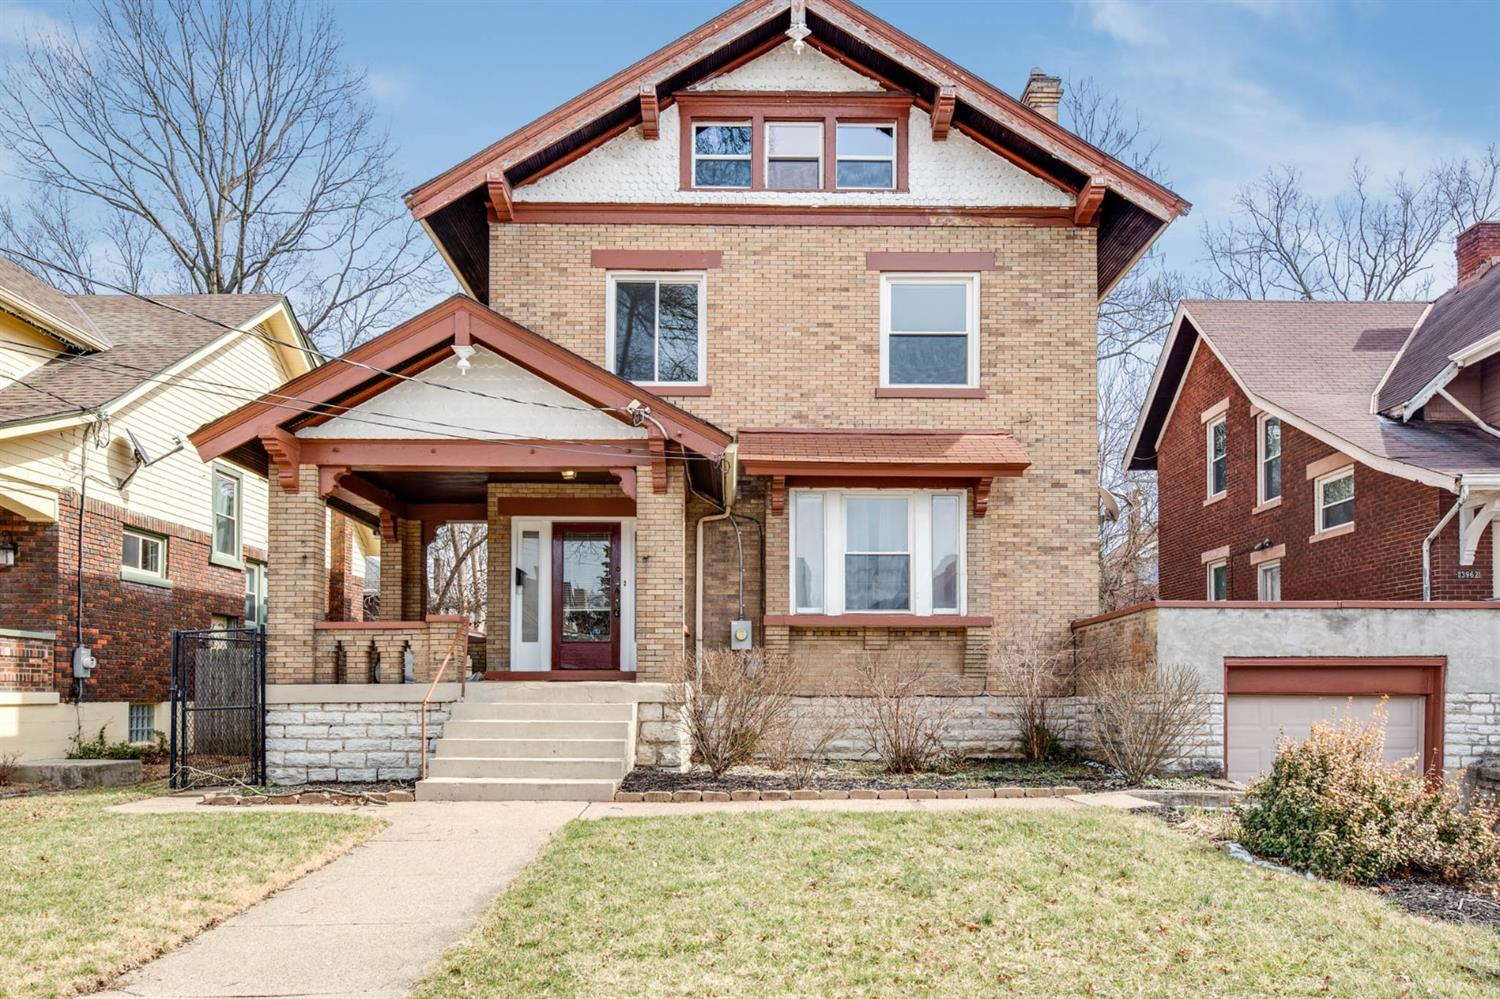 3964 Lowry Ave Avondale, OH